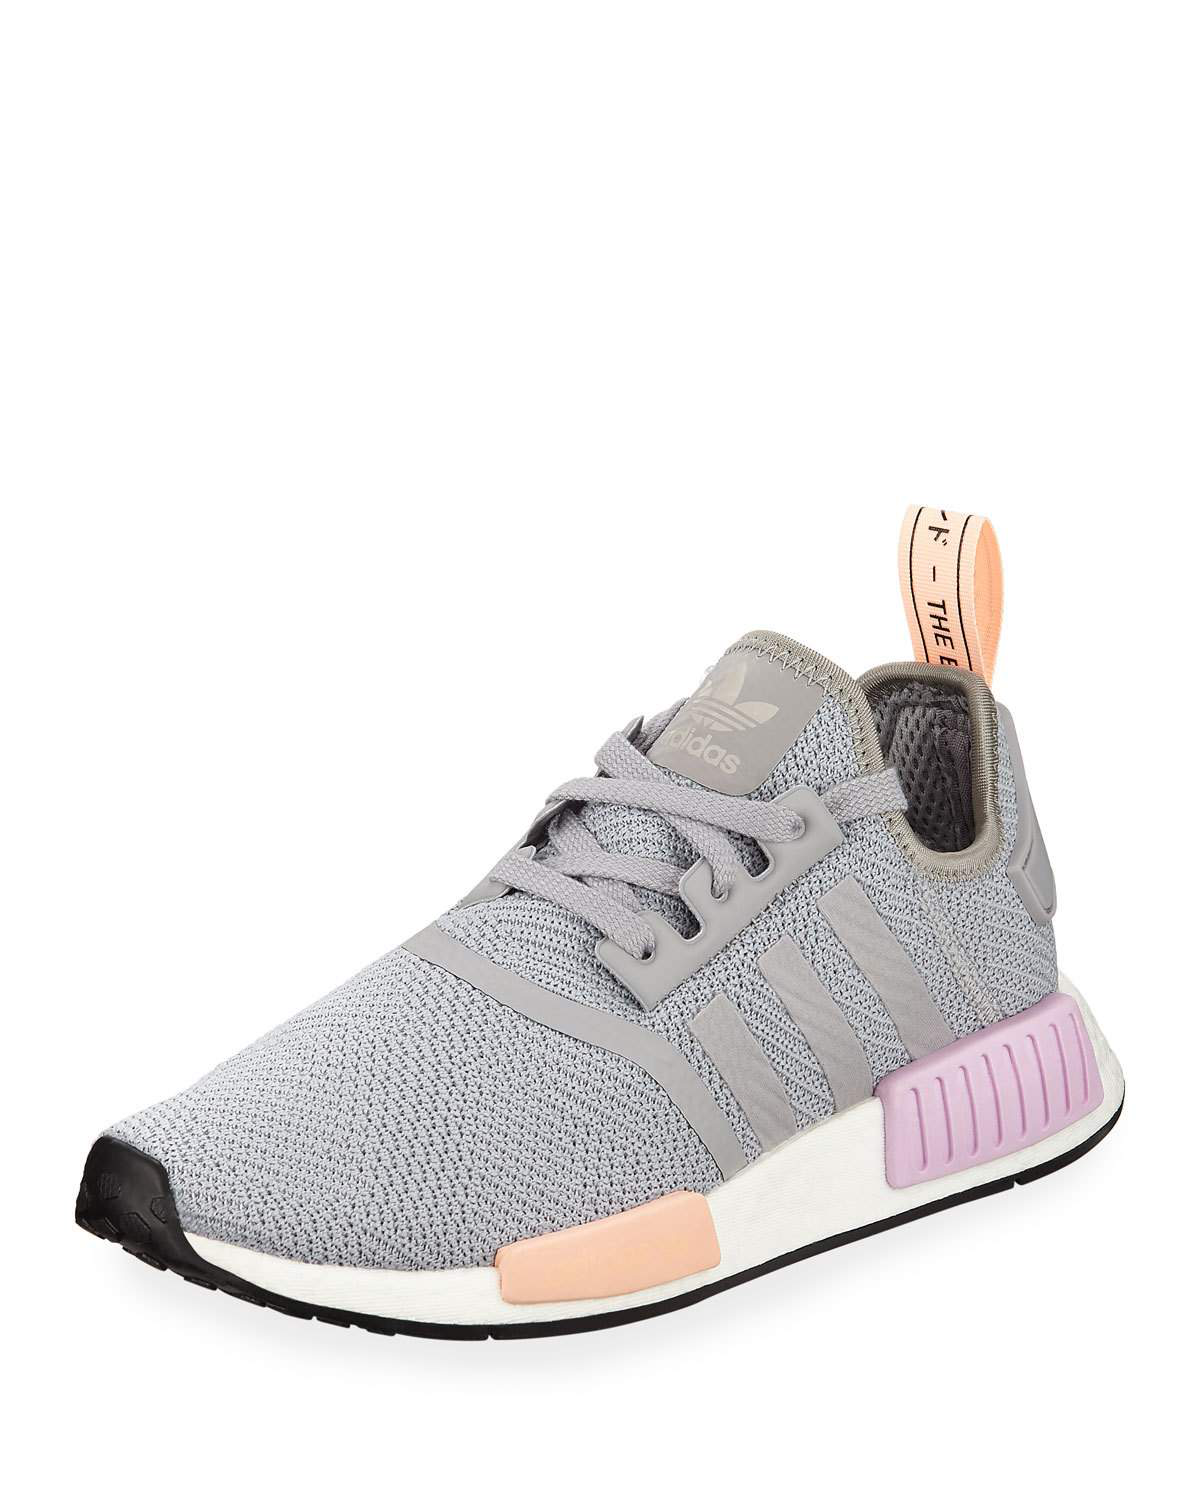 5b124136b7191 Adidas Originals Women s Nmd R1 Knit Low-Top Sneakers In Grey